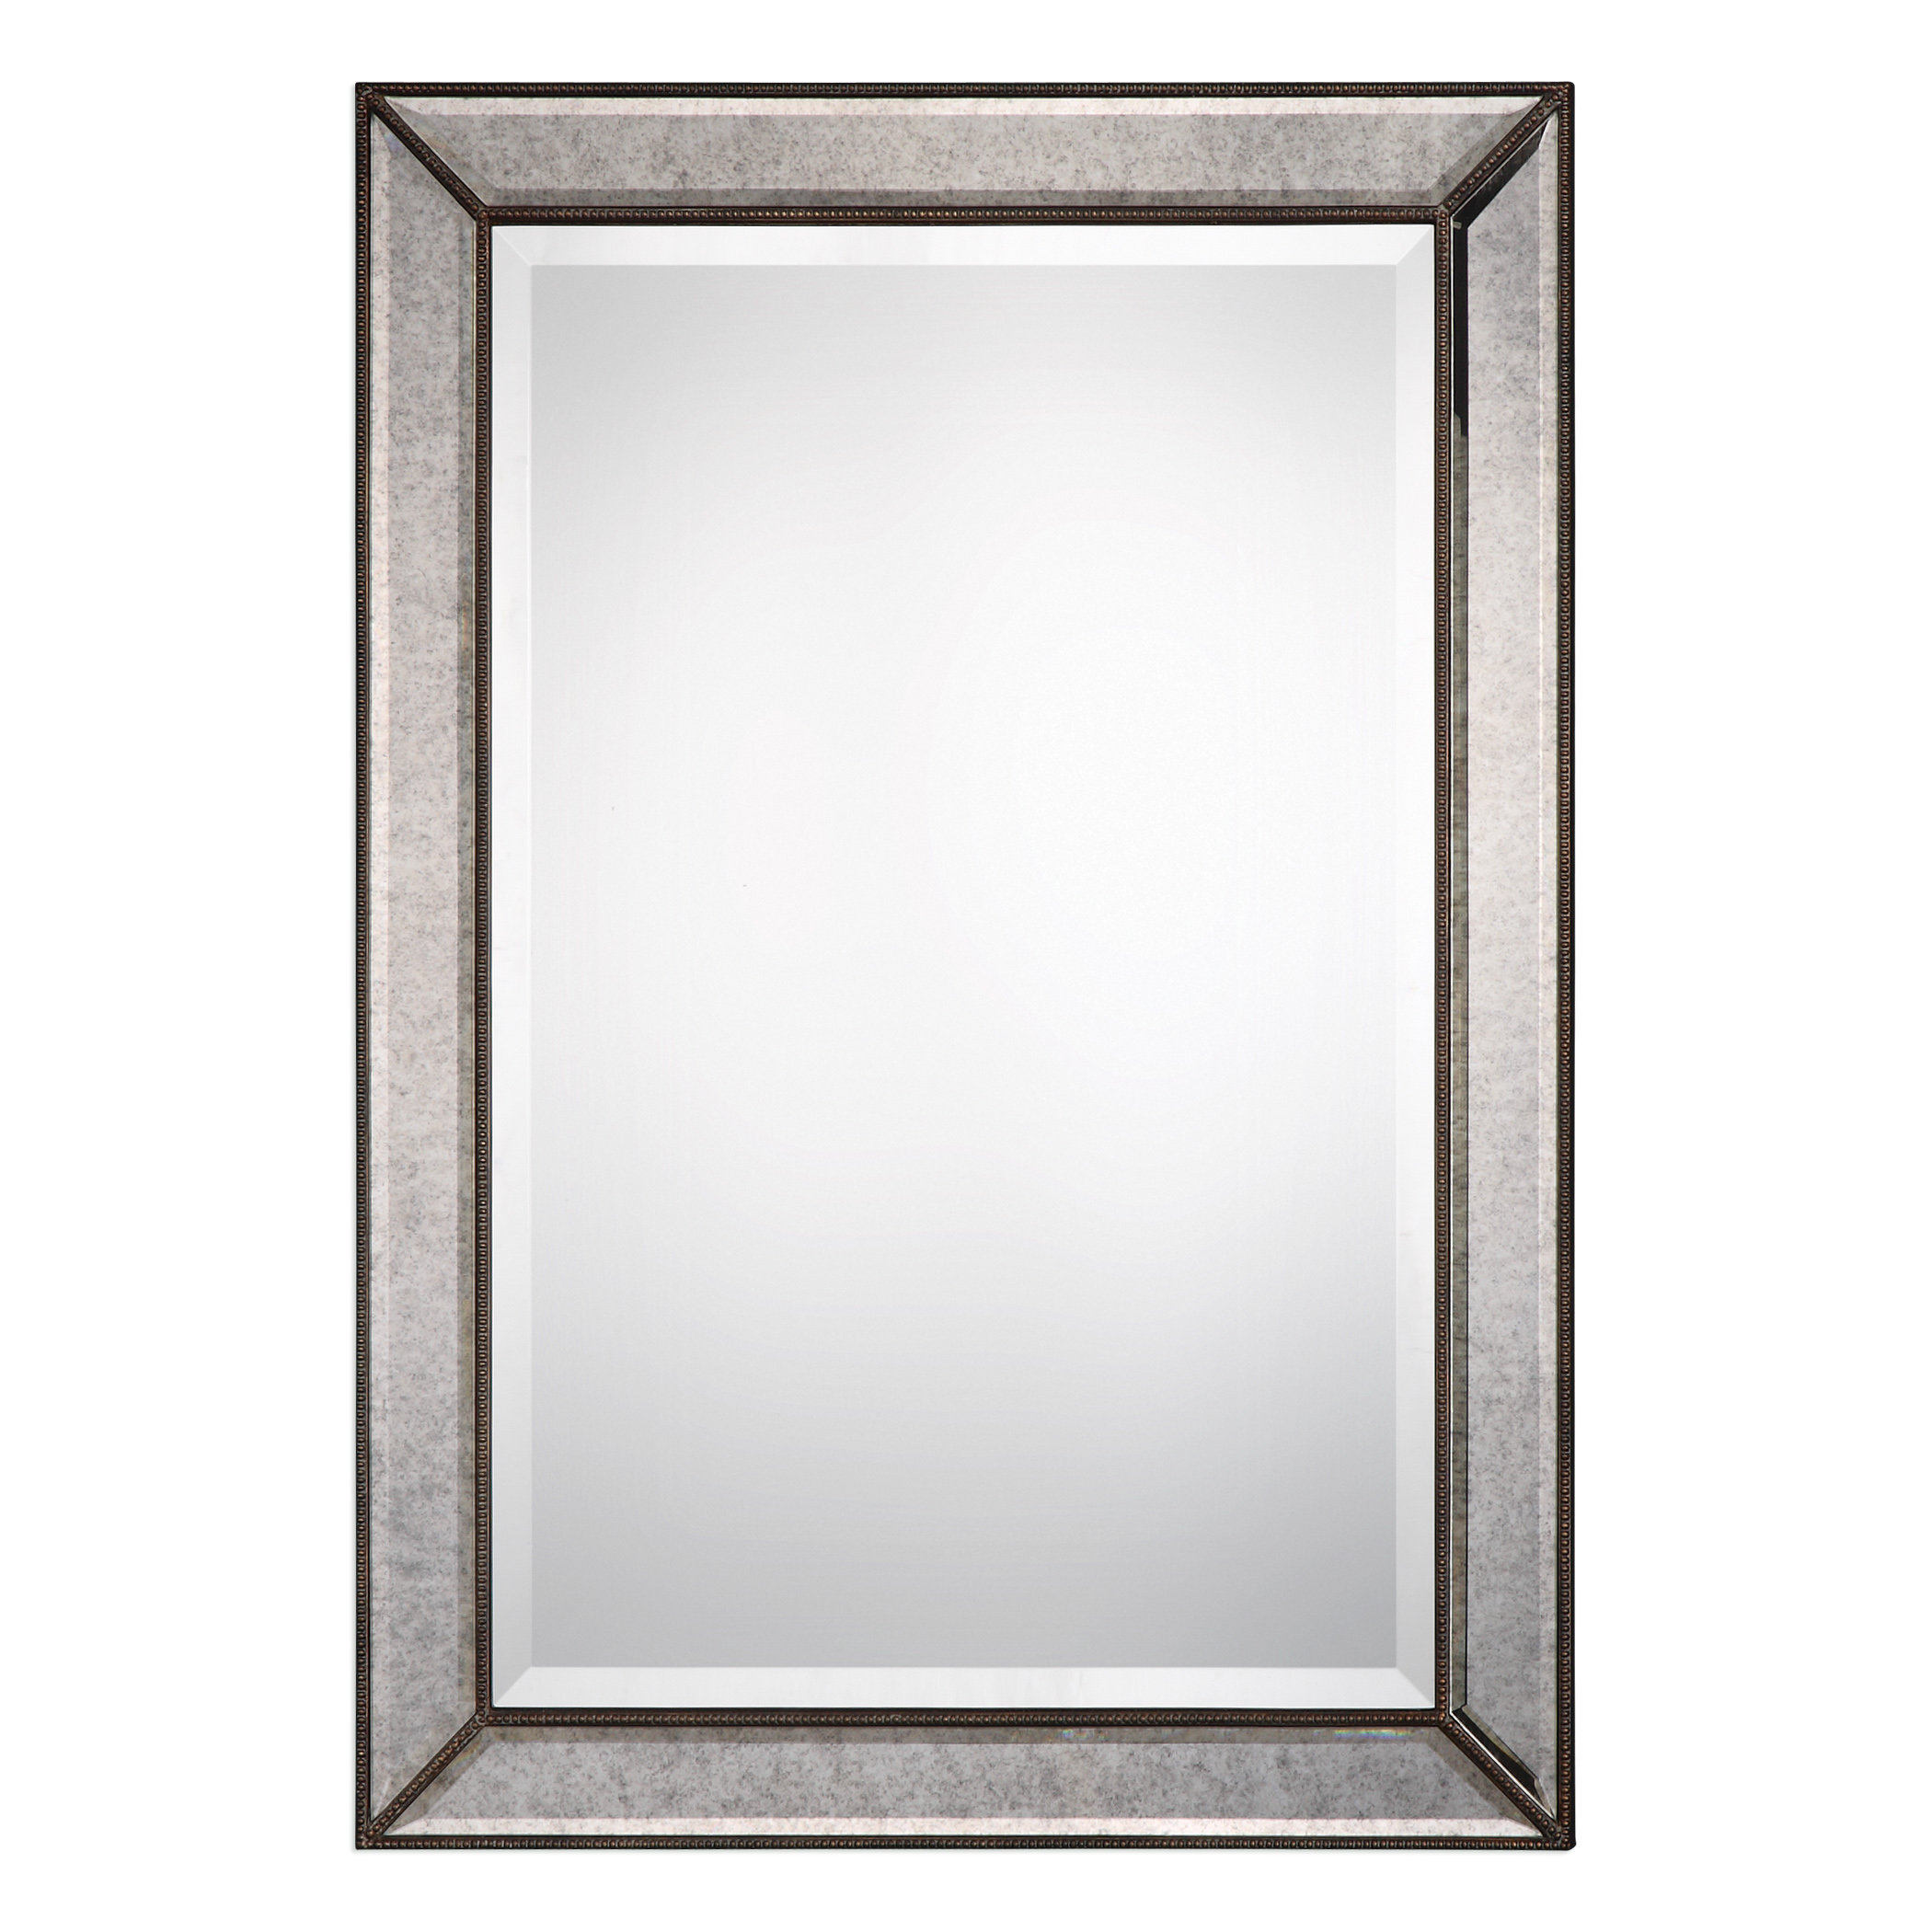 Marsha Traditional Rectangle Mdf/mirror Framed Accent Mirror With Willacoochee Traditional Beveled Accent Mirrors (View 11 of 20)